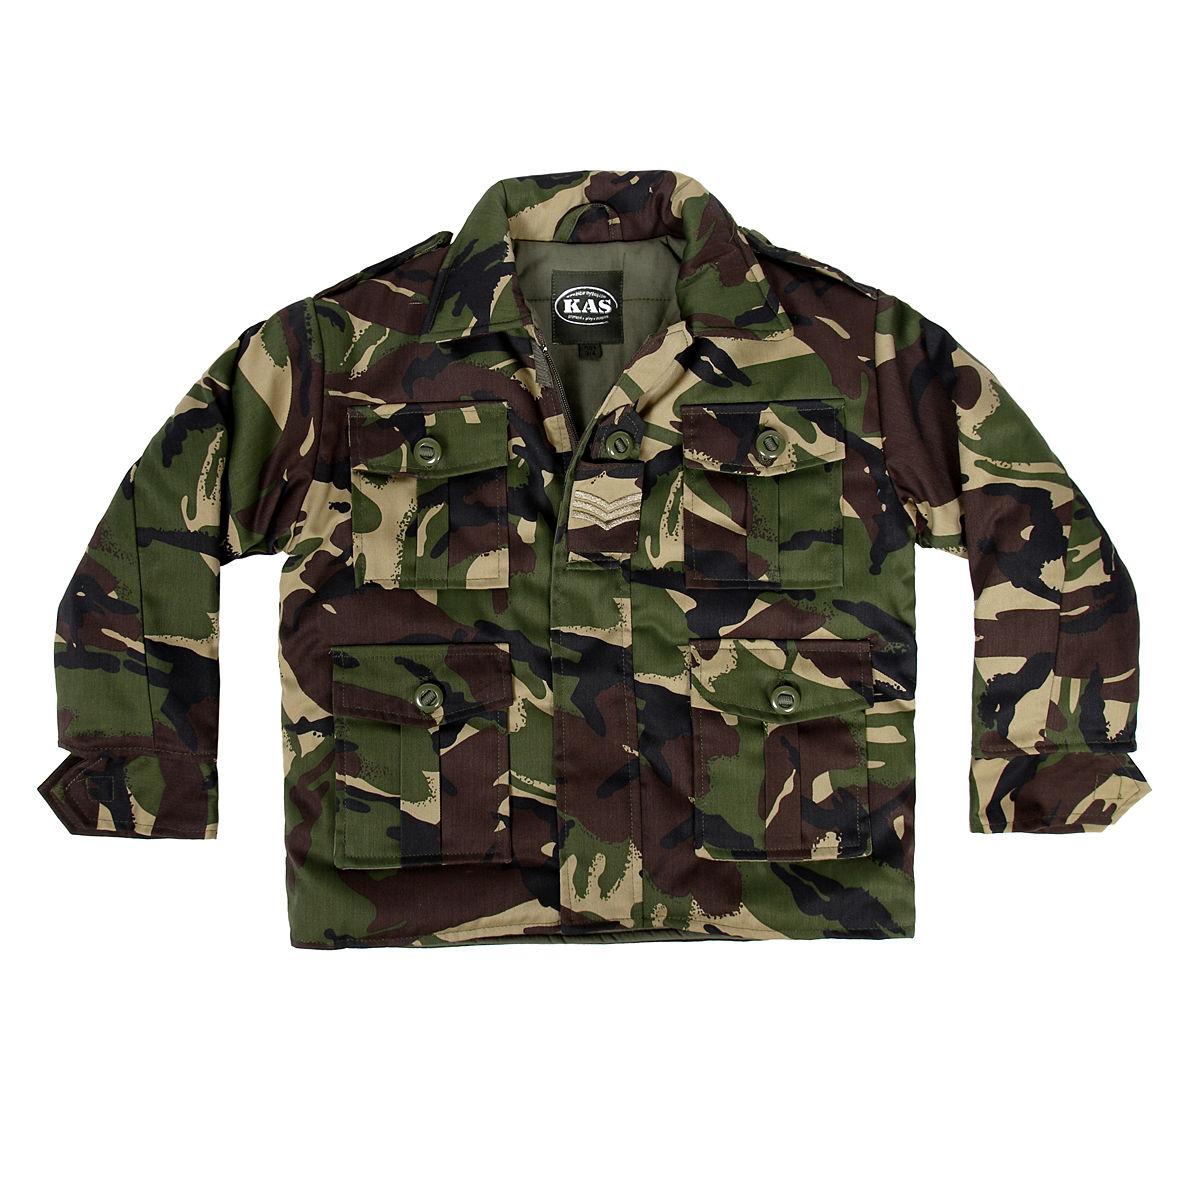 We have durable kids camo clothing and kids army gear that is well-made and affordable! Huge selection of everything military for kids in 14, square foot store or online.